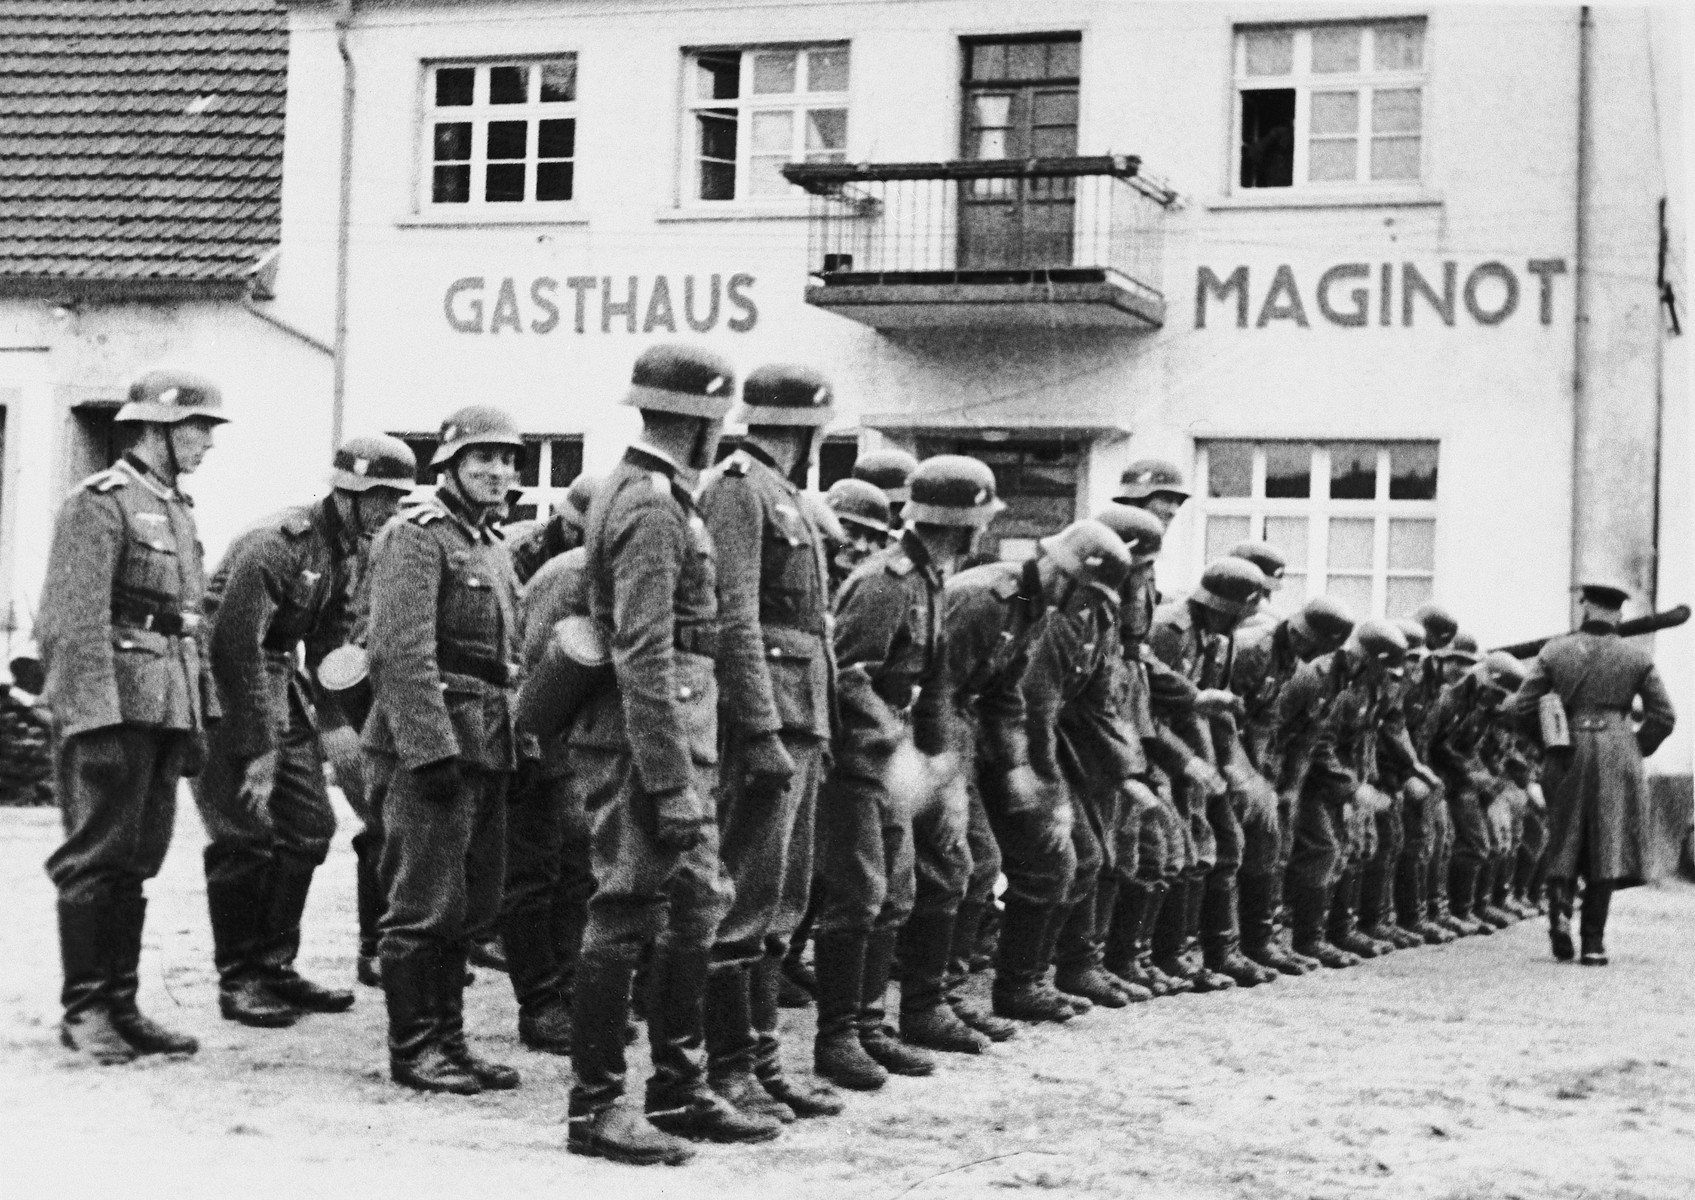 A German officer inspects his troops in front of the Gasthaus Maginot in Eppenbrunn, Germany.